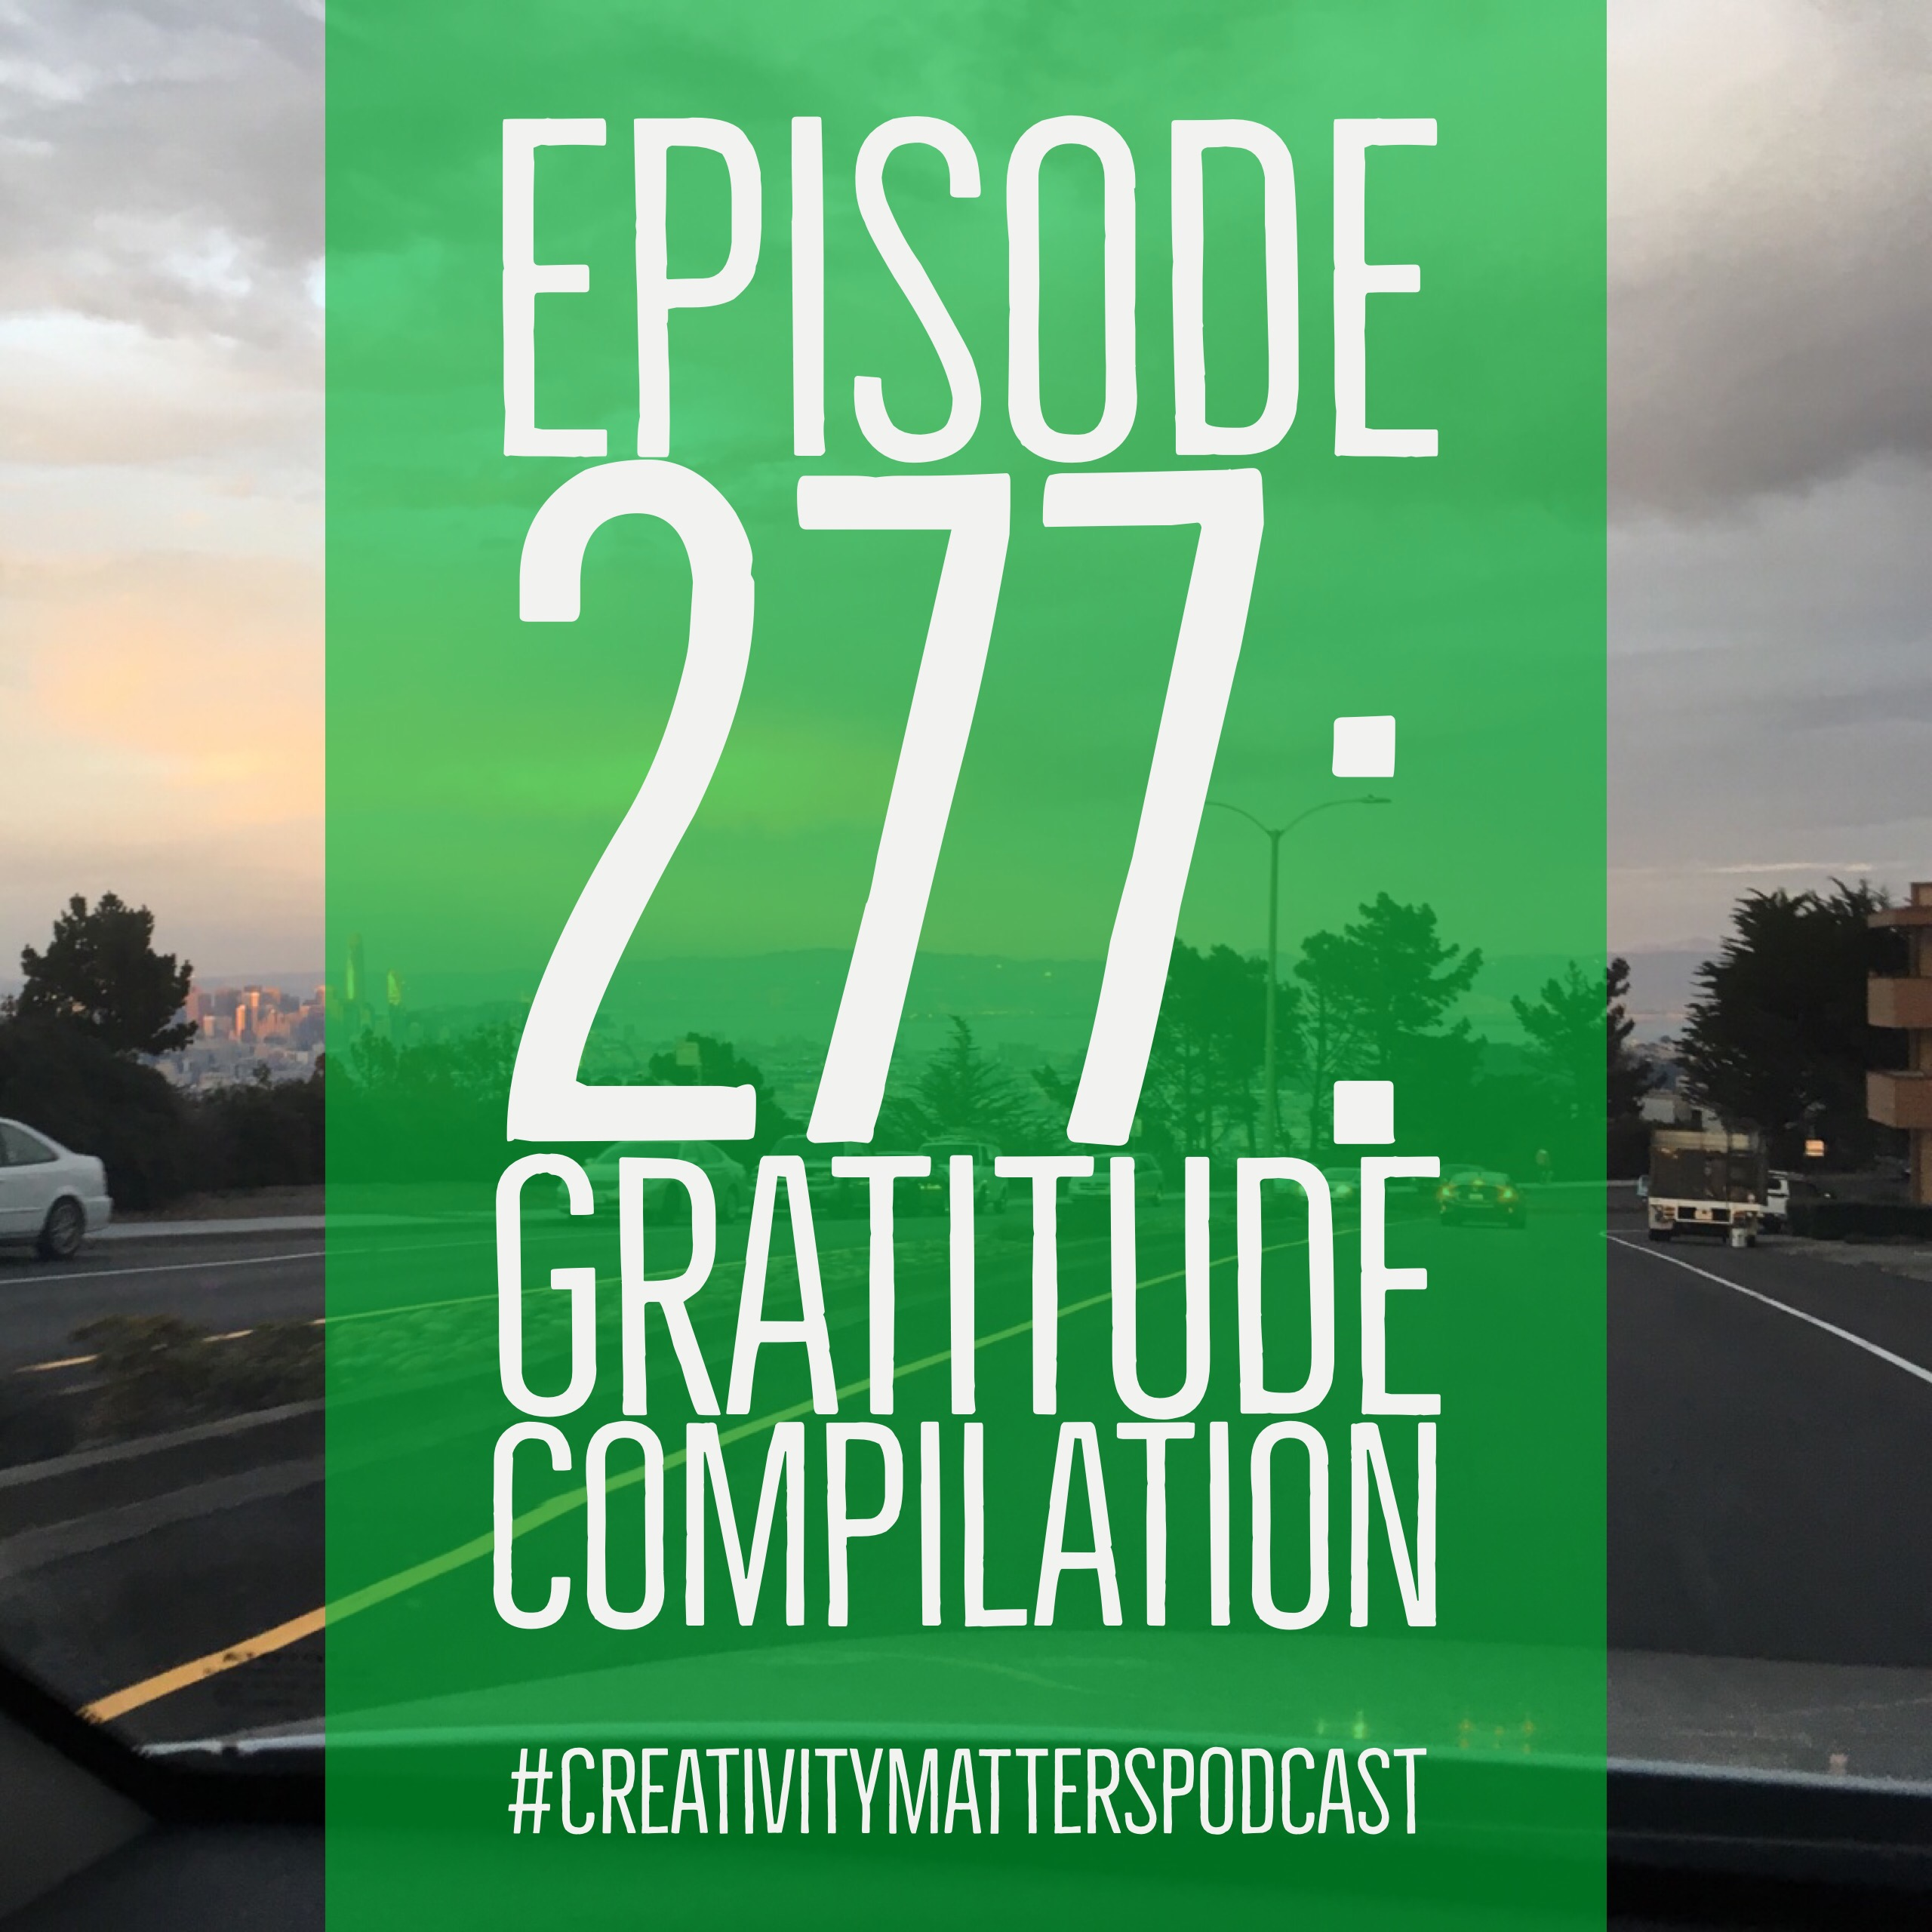 Episode 277: Gratitude Compilation